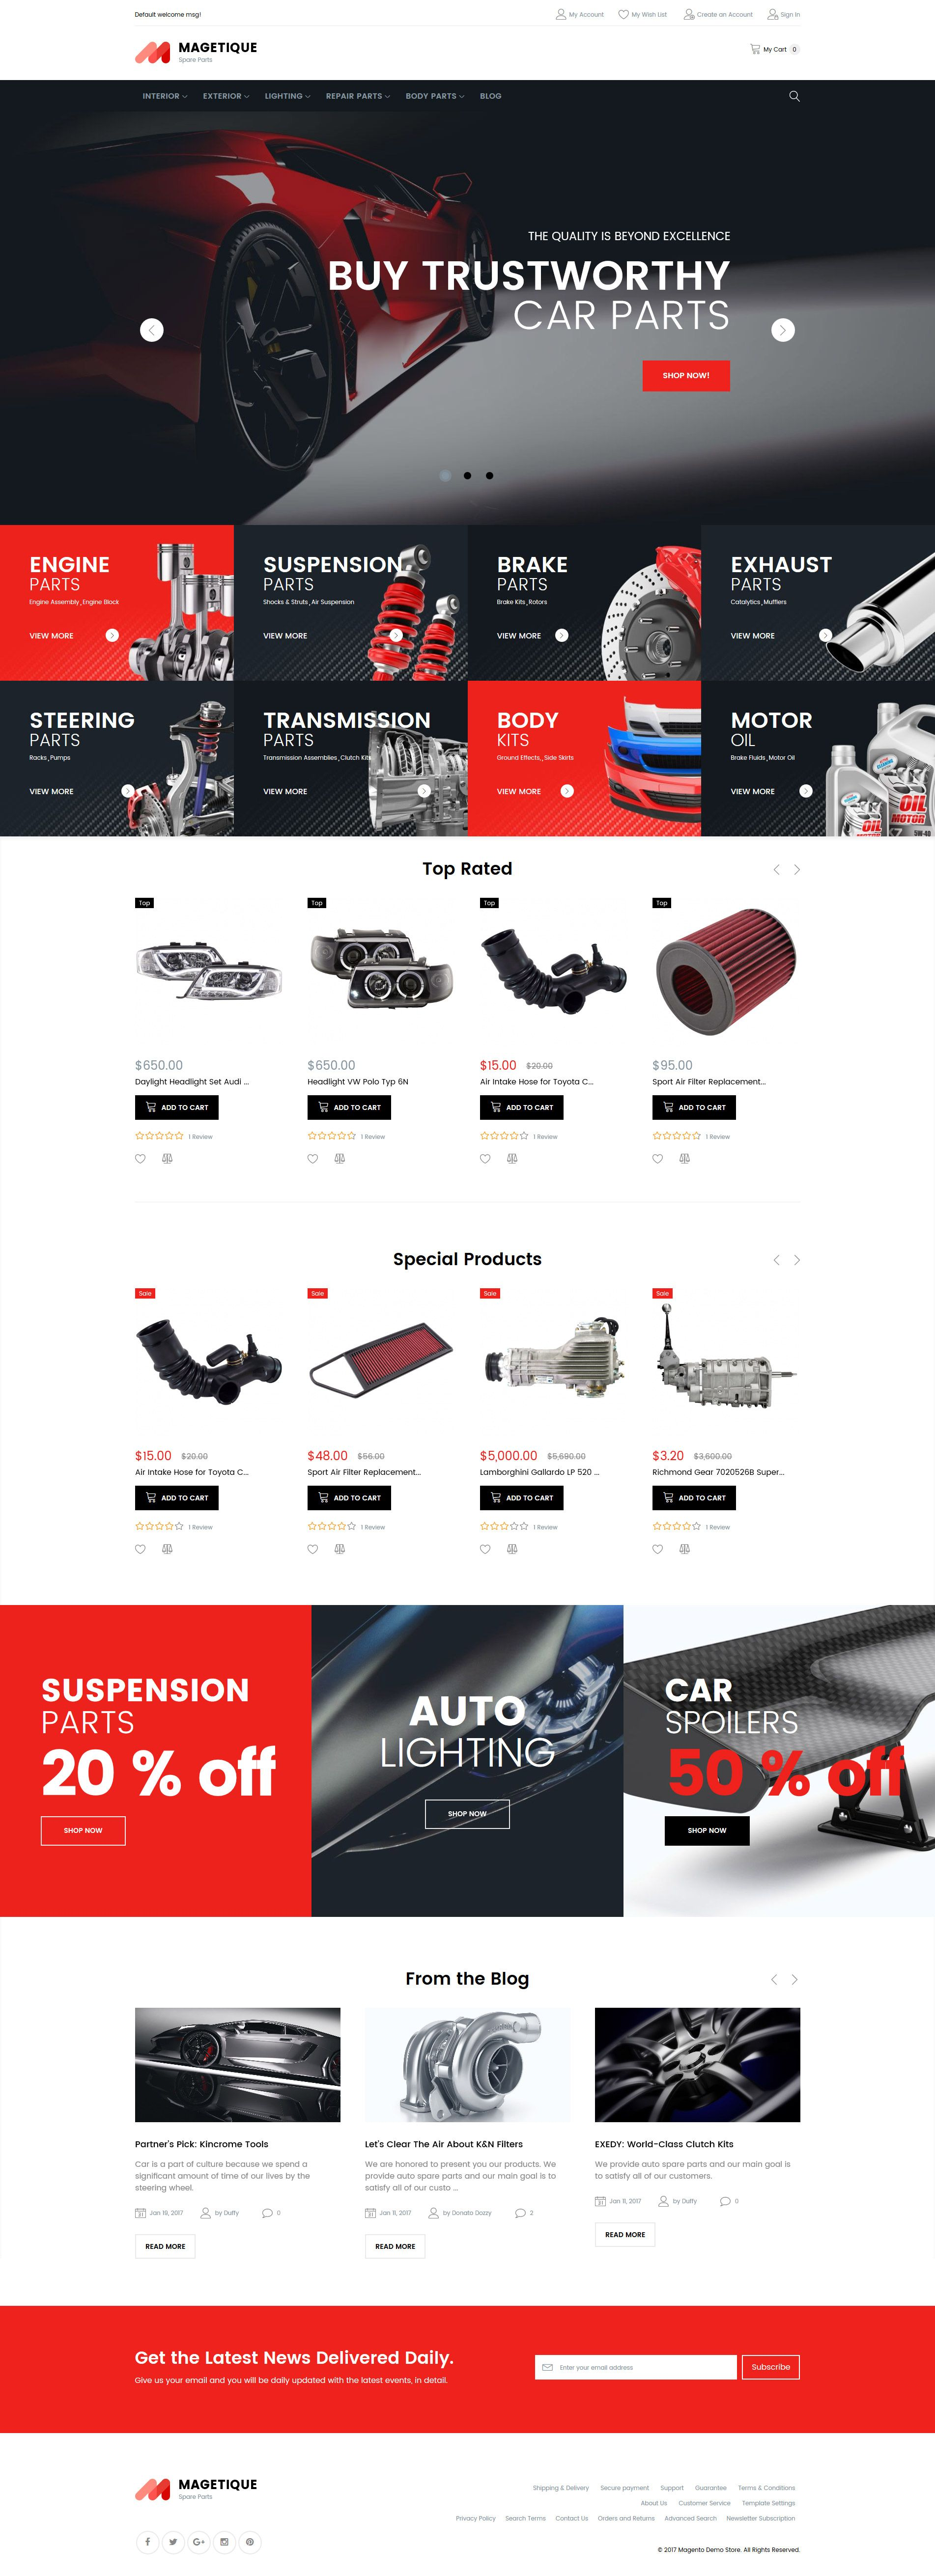 Magetique - Spare parts | Pinterest | Cars, Website and Website designs